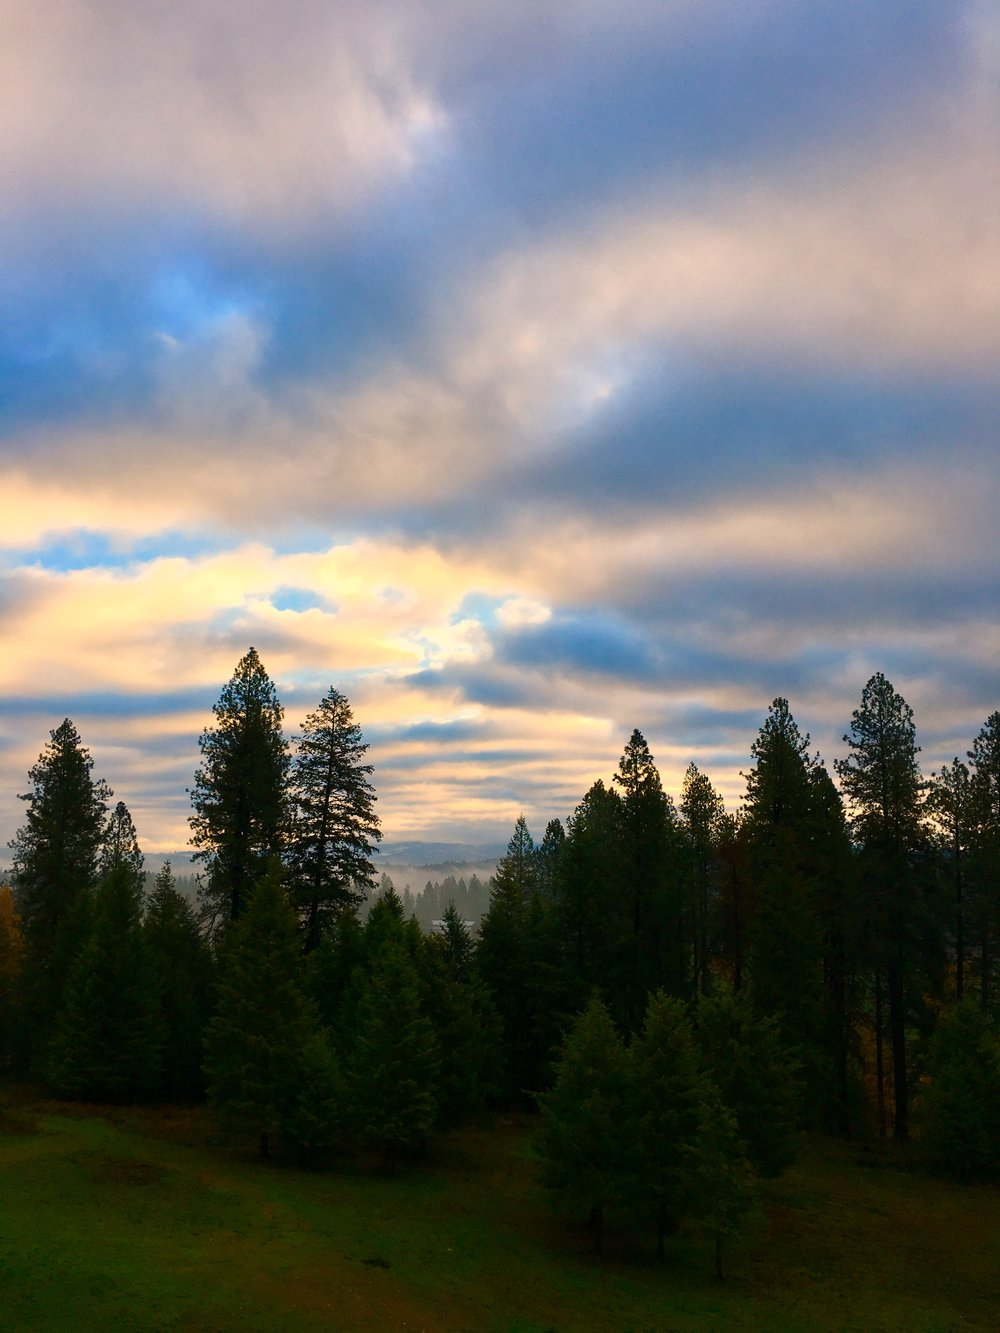 The morning view from N. Spokane. A beautiful day for some window cleaning.